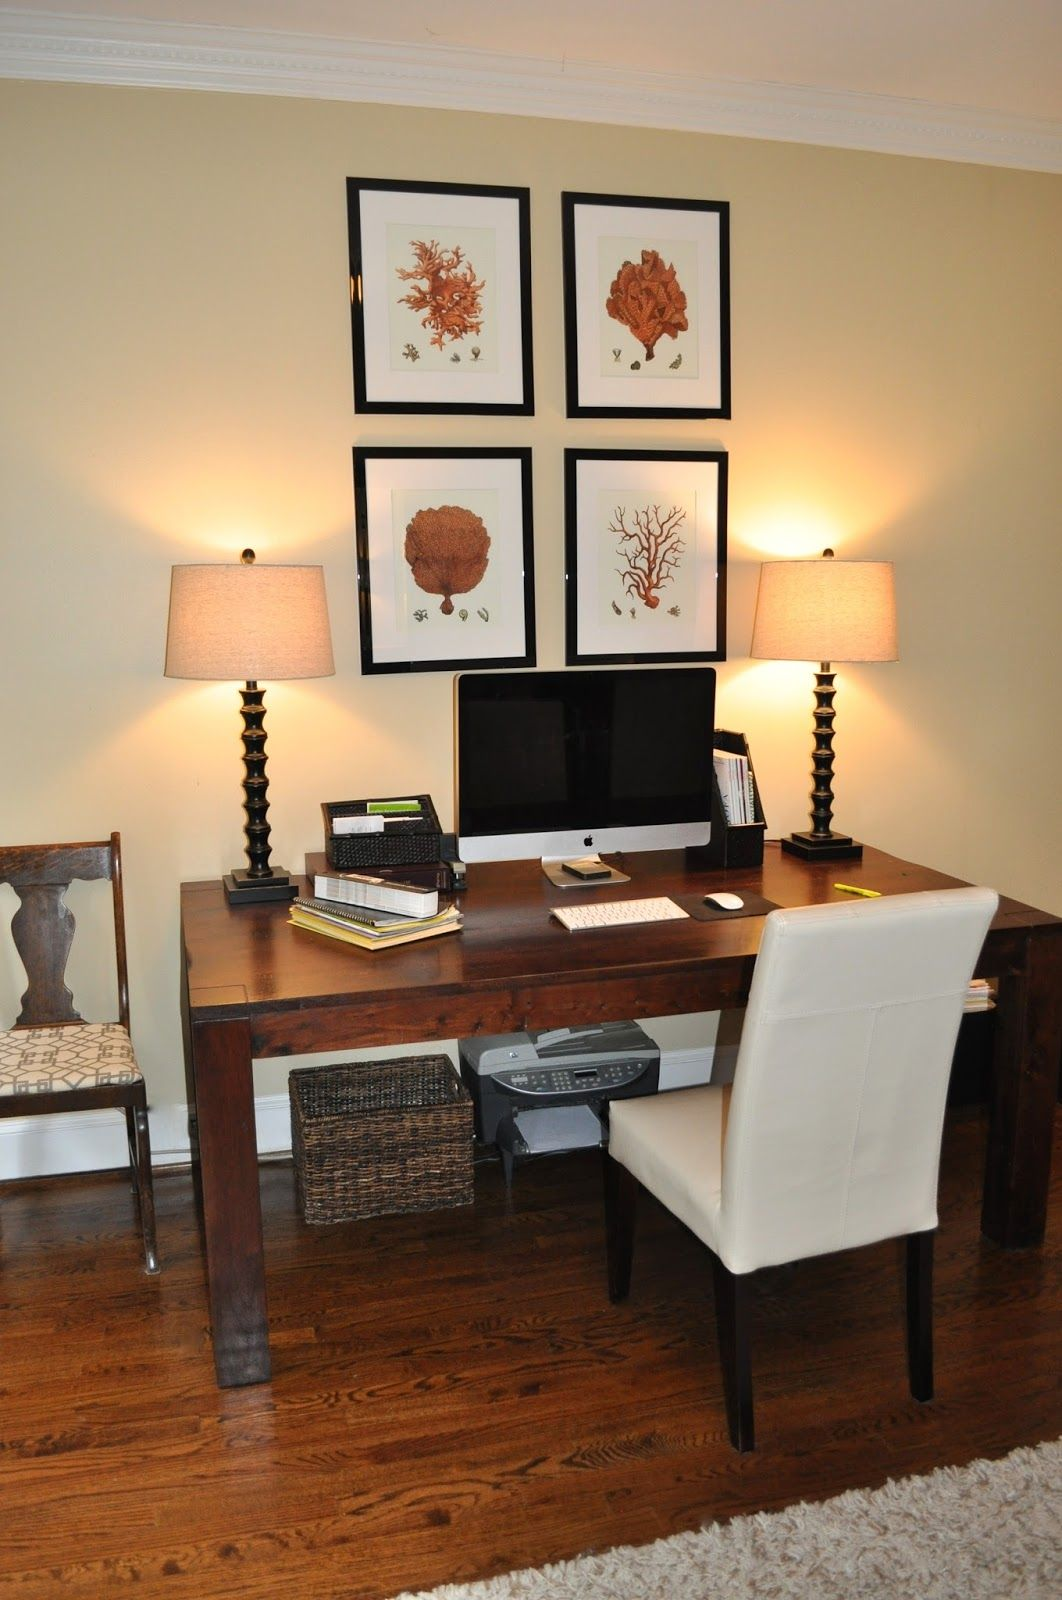 Home Tour Dining Room Table Affordable Decor Simple Wooden Desks